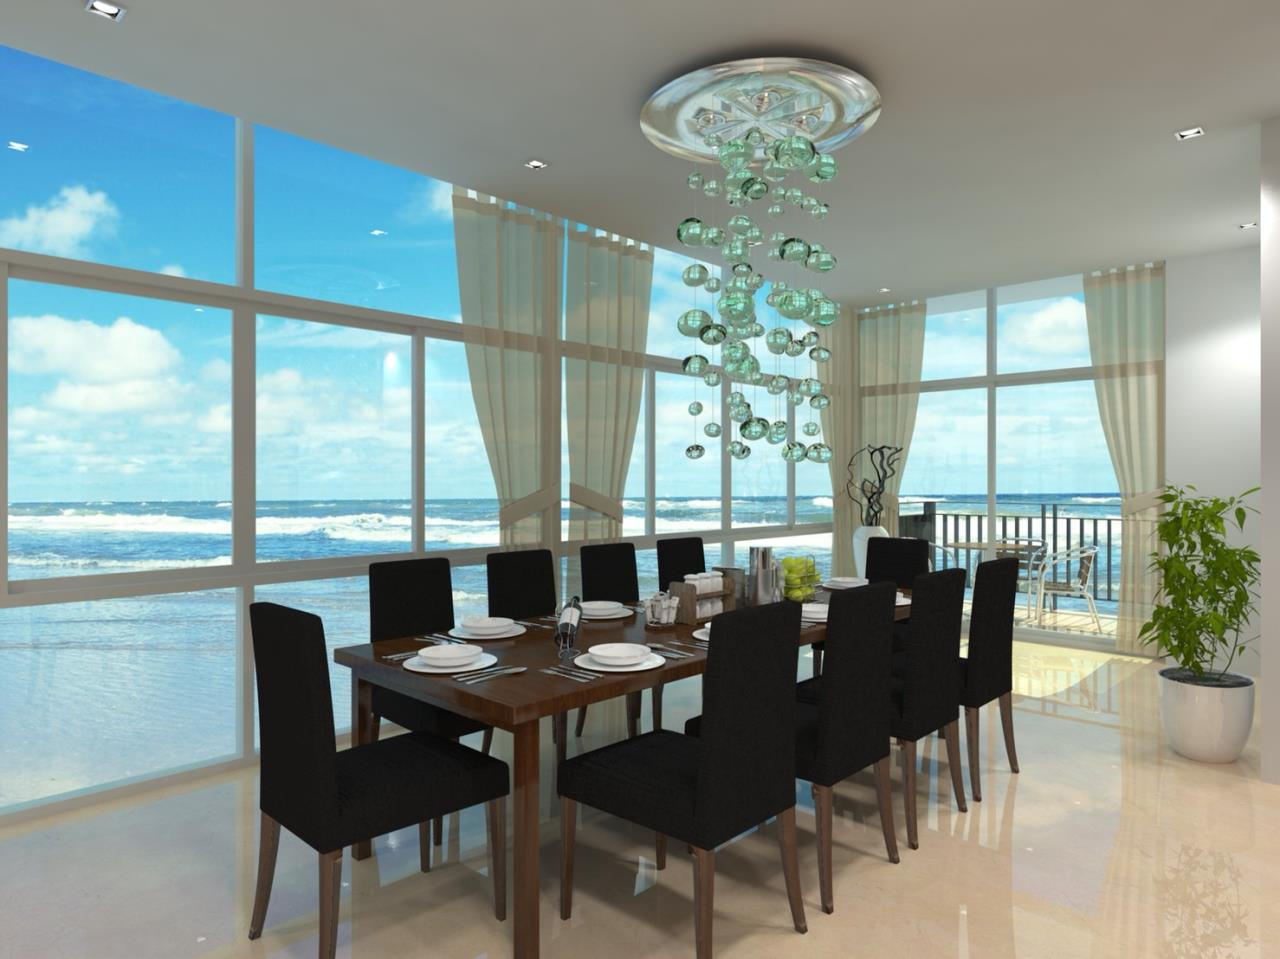 Signature Realty ( Thailand ) Co Ltd Agency's Furnished 2bedroom 65.75 sq.m condo with jacuzzi floor 21-31 at The Grand Jomtein Beach Pattaya 32